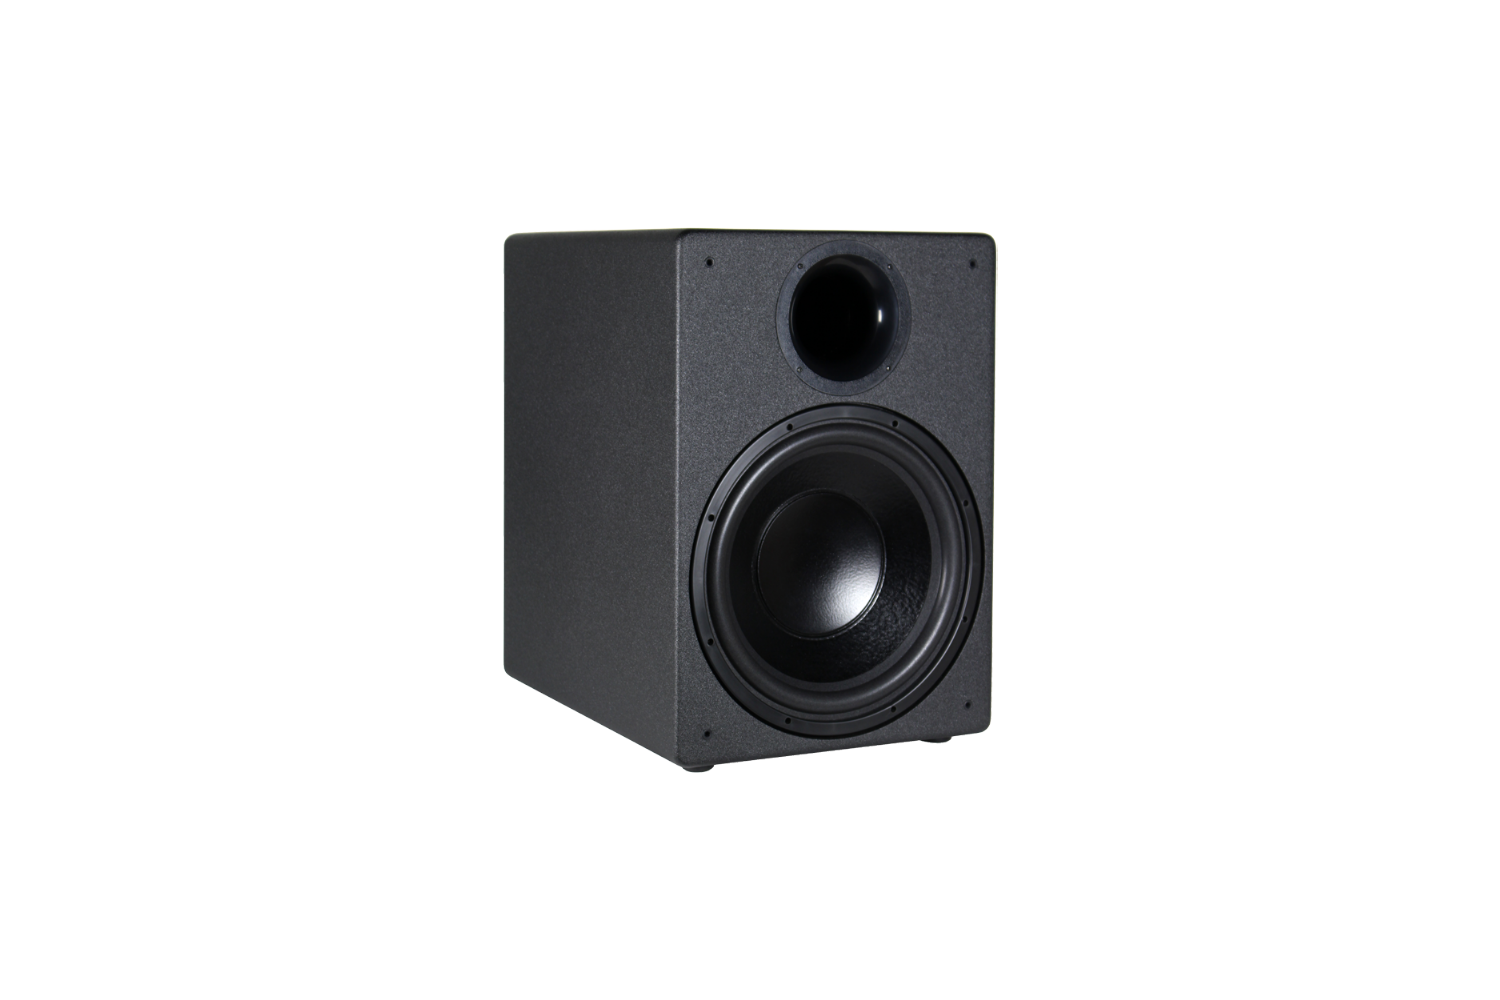 V1500 Home Theater Subwoofer - Power Sound Audio